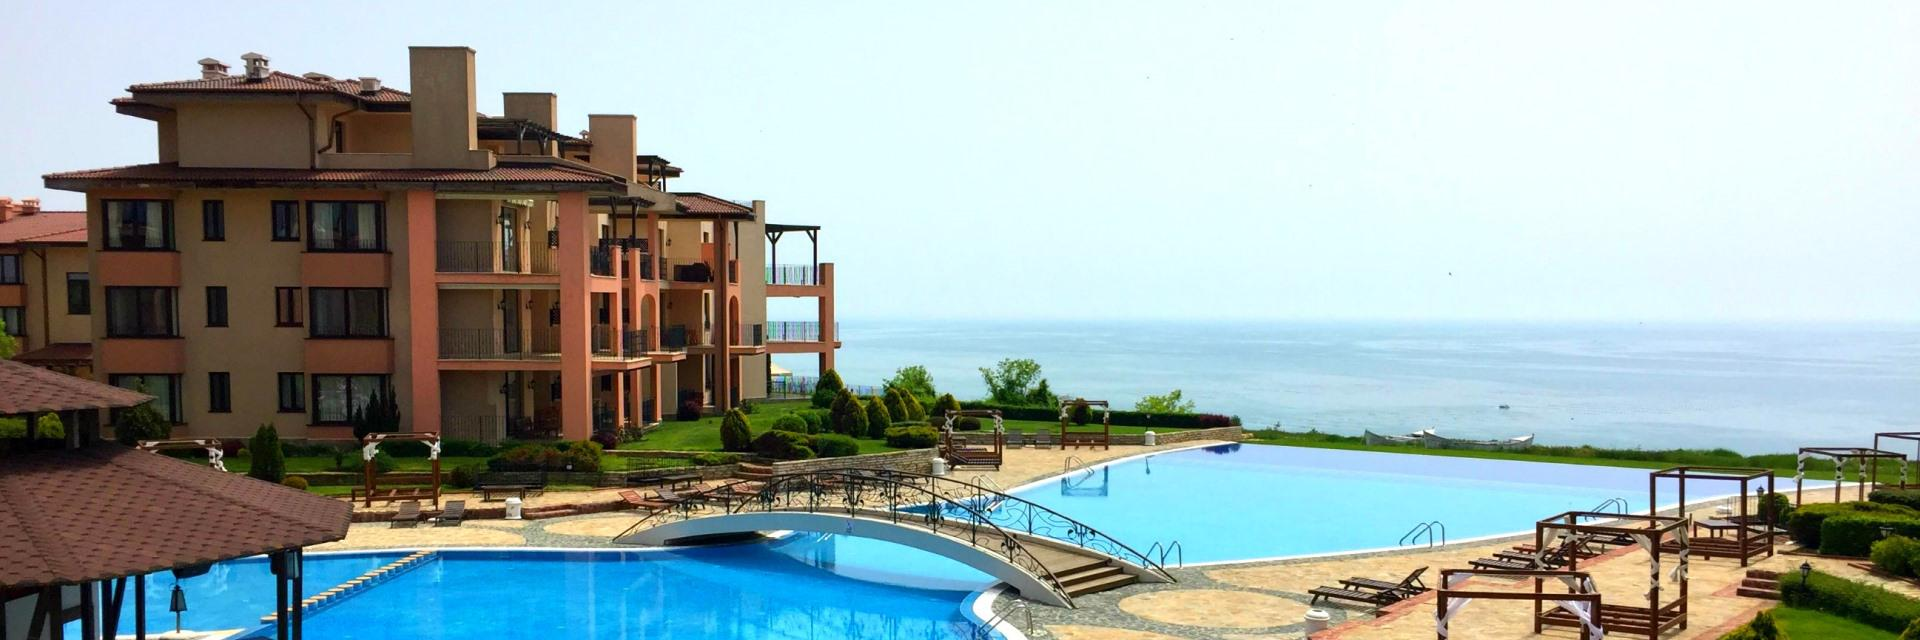 Superb two bedroom apartment for sale in Kaliakria resort